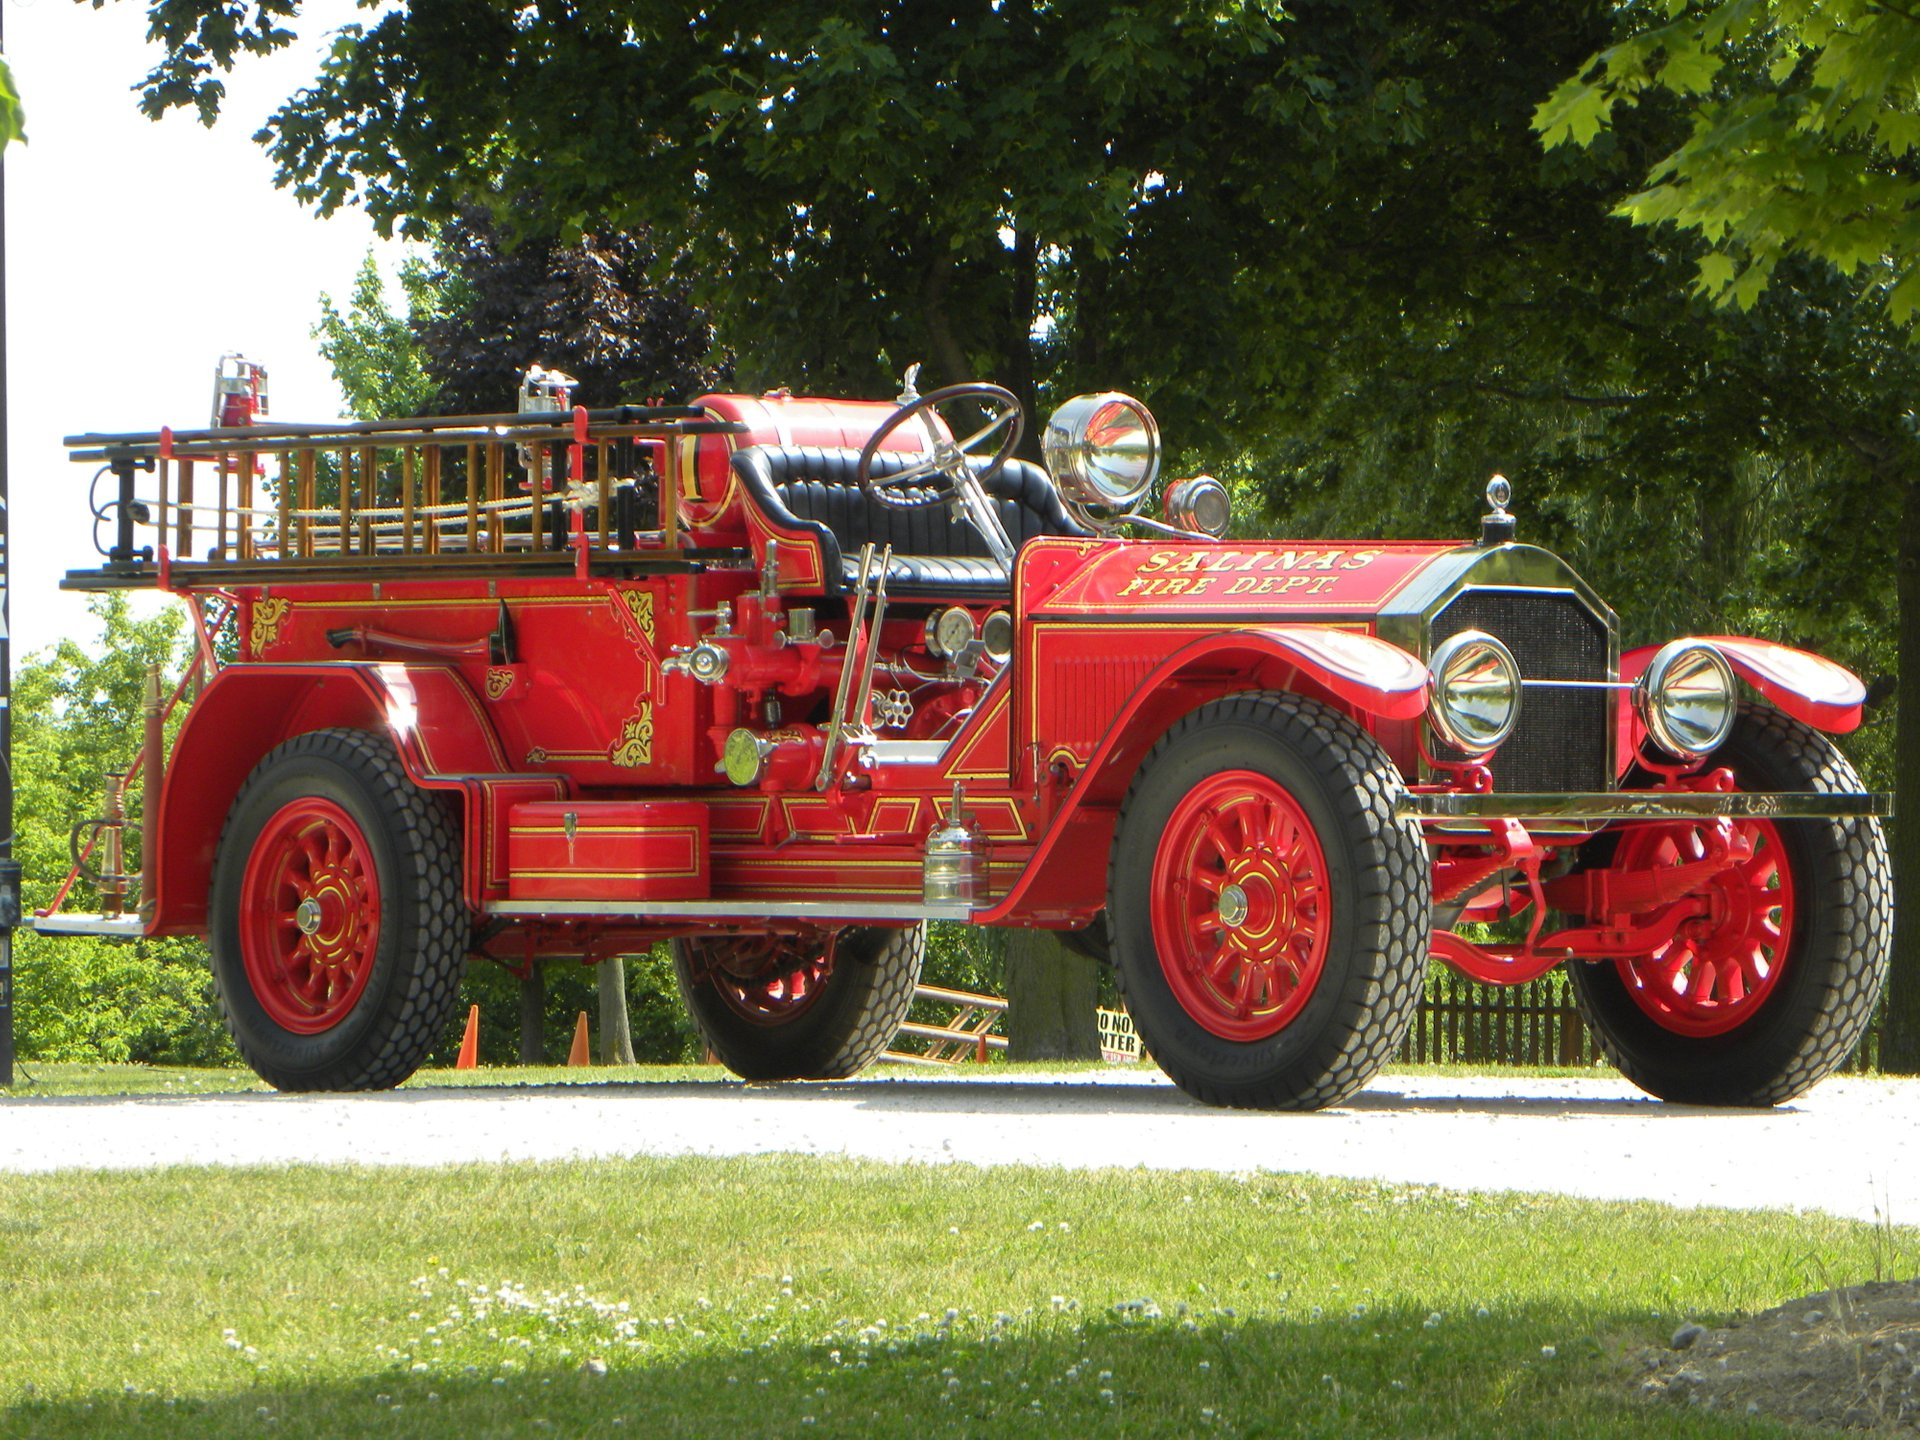 1922 american la france type 75 pumper